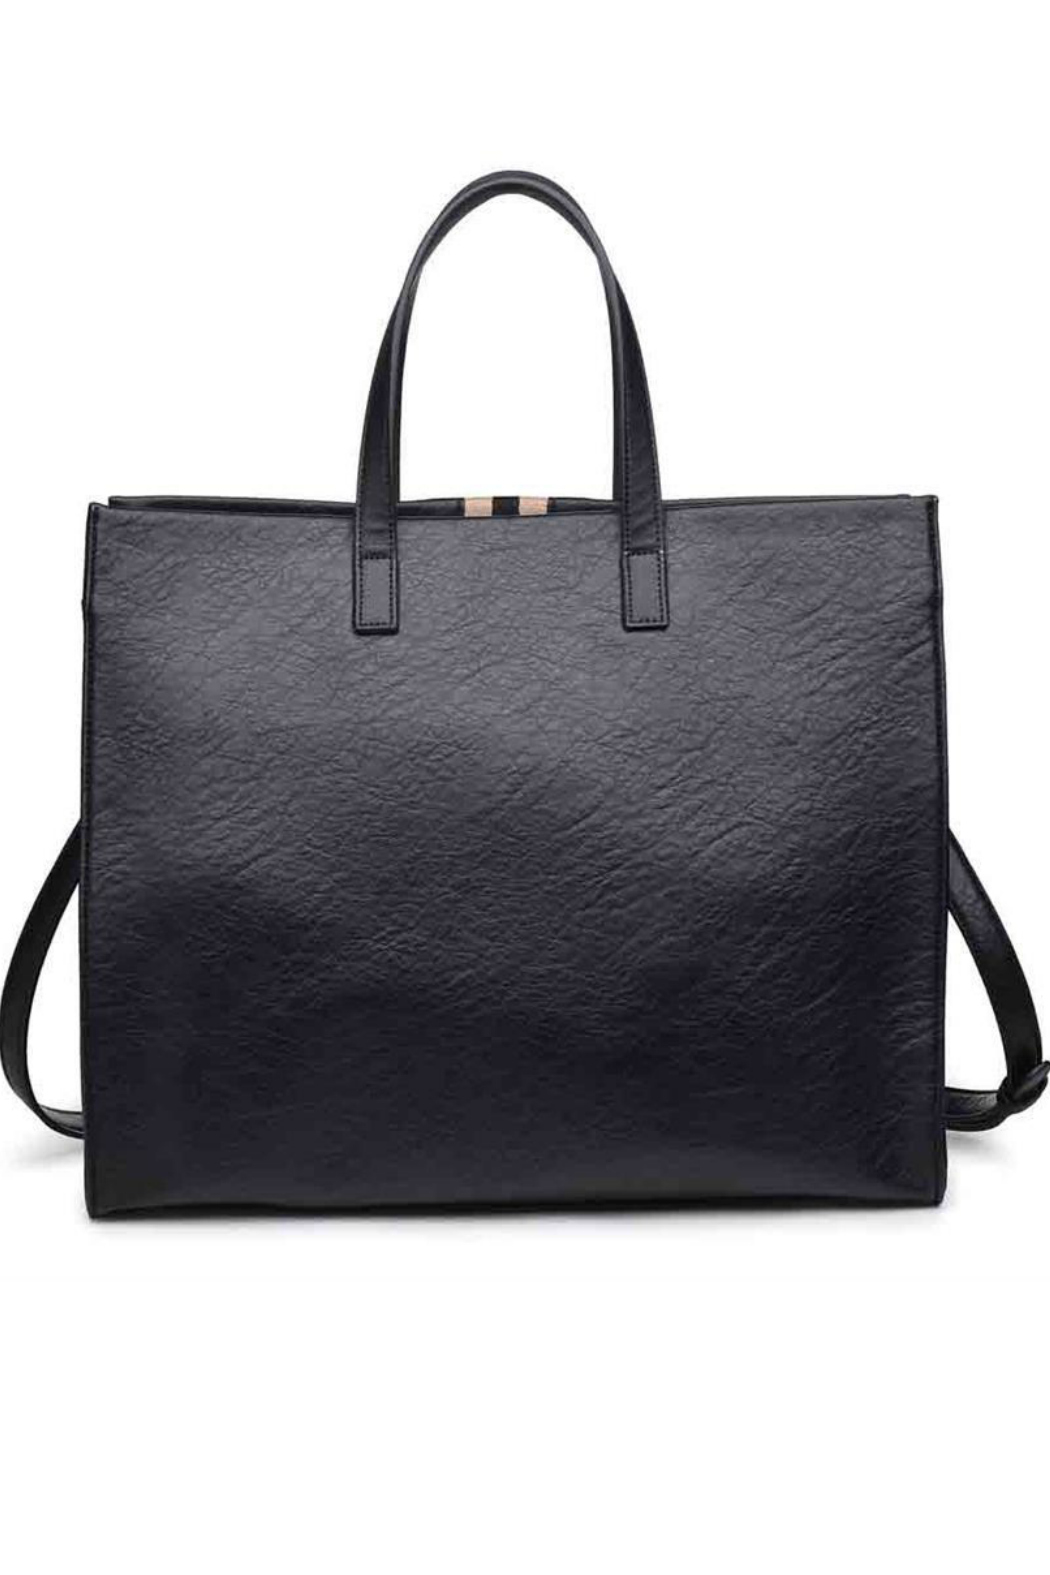 Moda Luxe Julian tote - Front Full Image